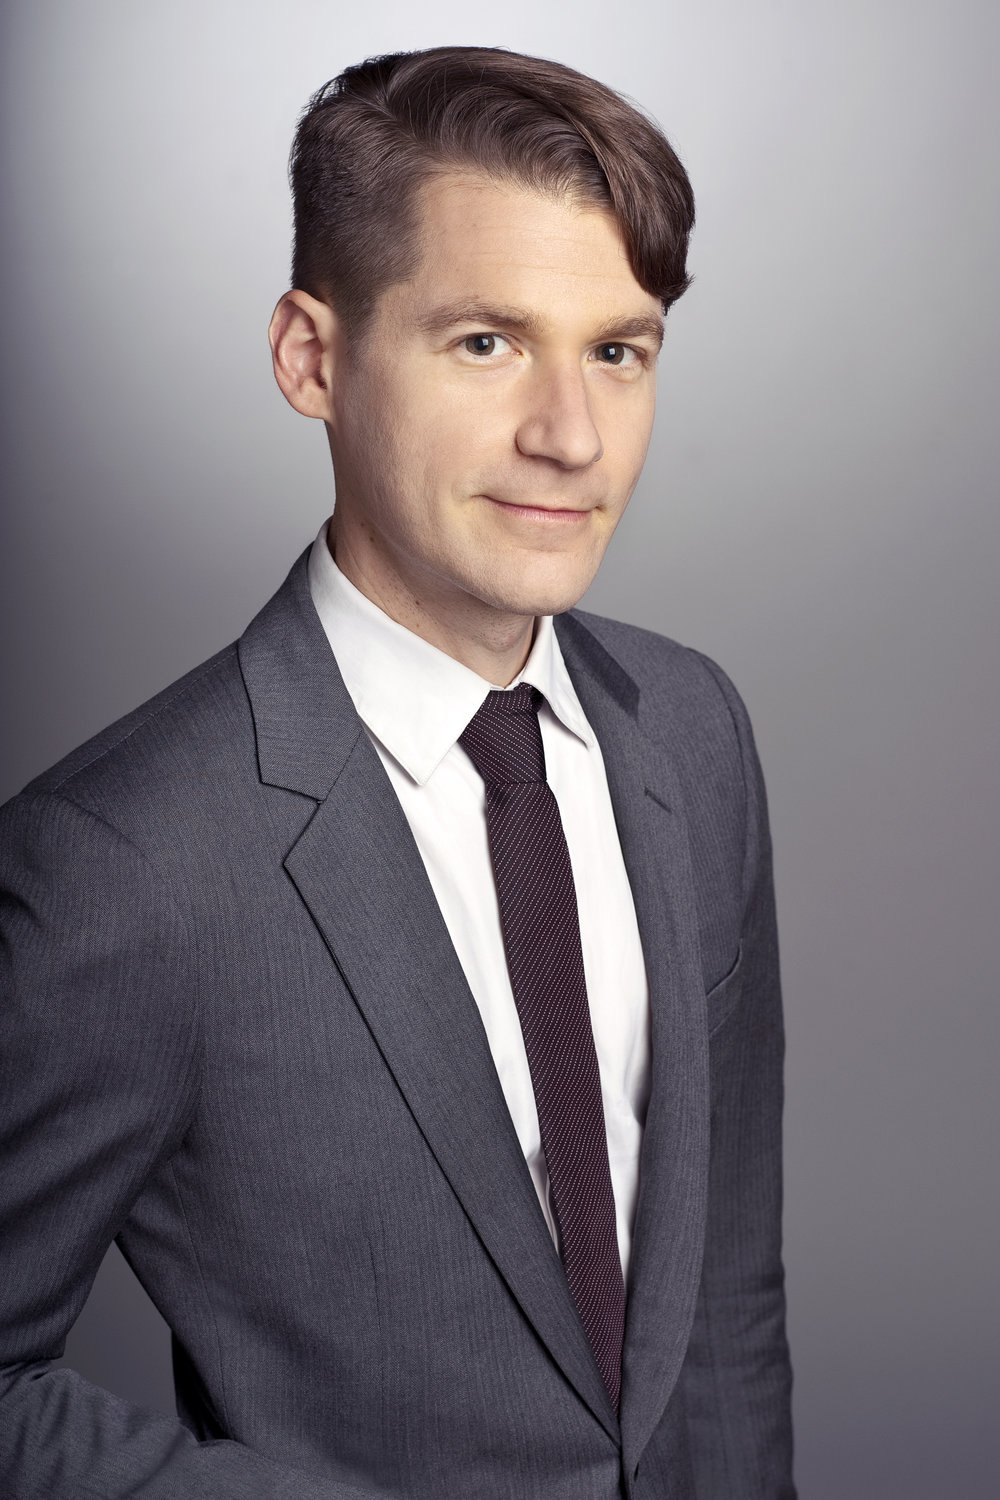 David Headshot Grey Suit Side Profile.jpg